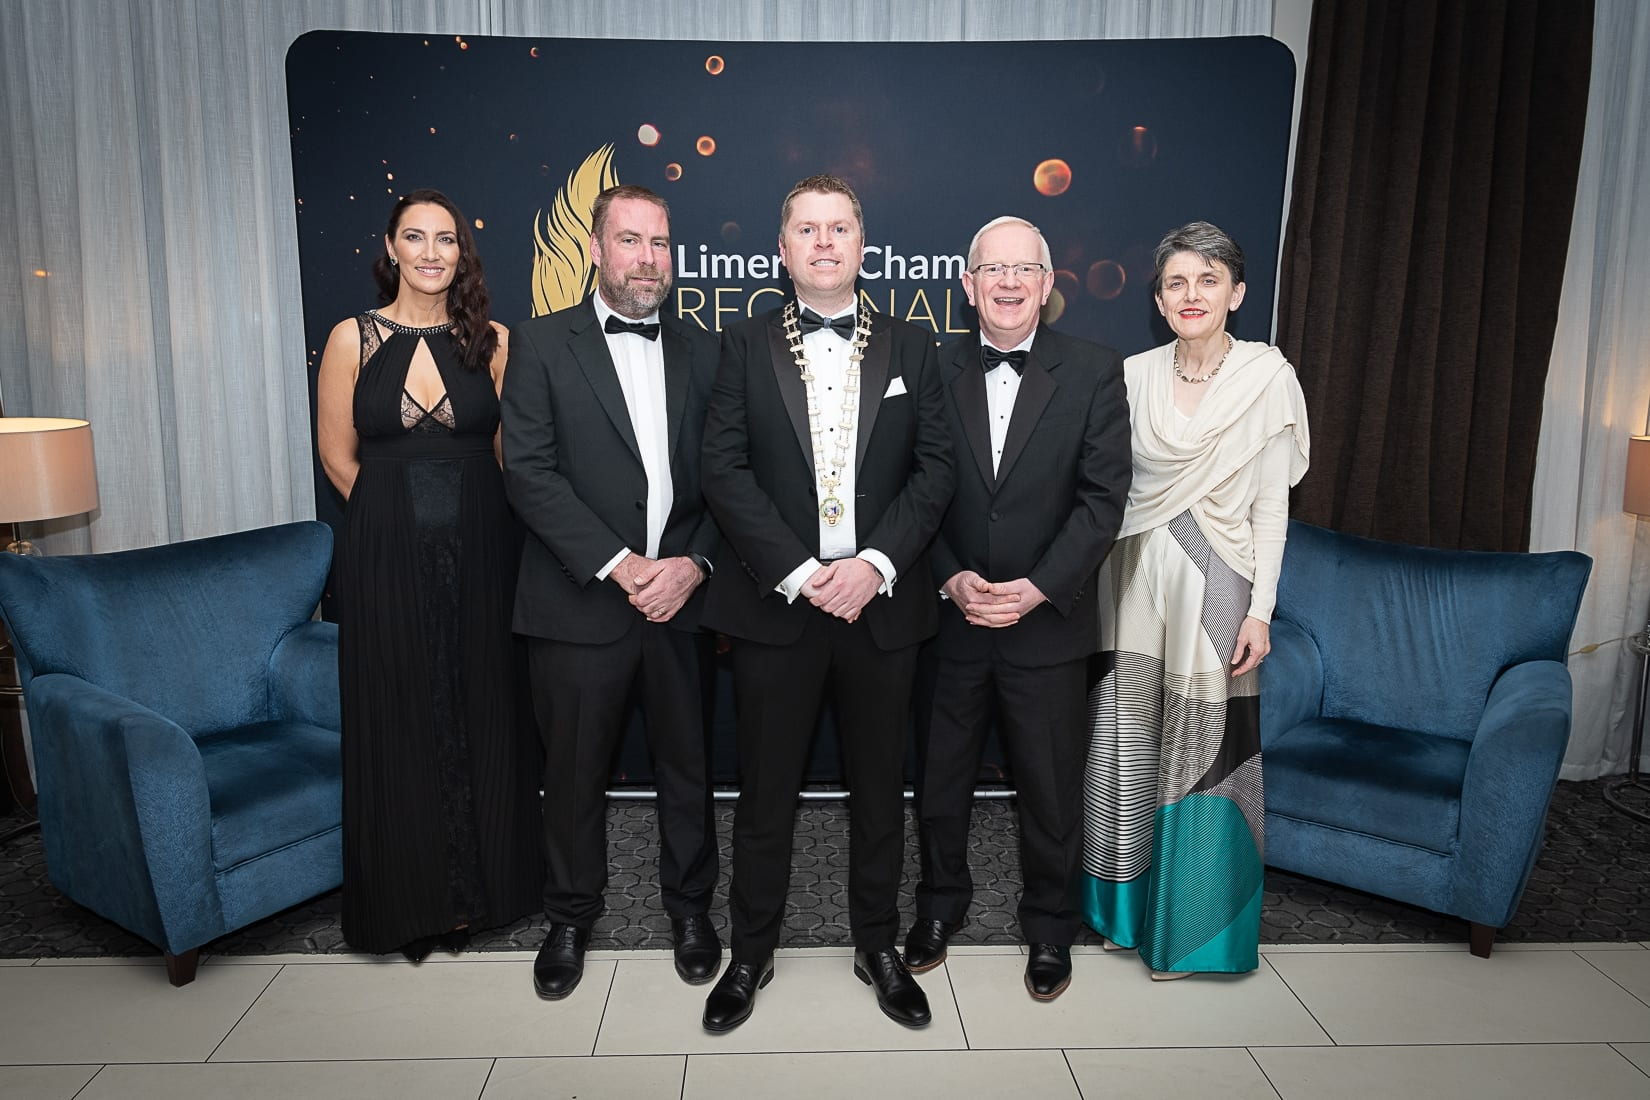 No repro fee-Limerick Chamber President's Dinner and Limerick Chamber Regional Business Awards 2019 which was held in the Strand Hotel on Friday 15th November /  Limerick Institute of Technology Sponsors/  - From Left to Right: Gillian Barry - LIT, Philip Hennessy -LIT, Eoin Ryan - President Limerick Chamber, Professor Vincent Cunnane- President LIT, Frances O'Connell - LIT  Photo credit Shauna Kennedy